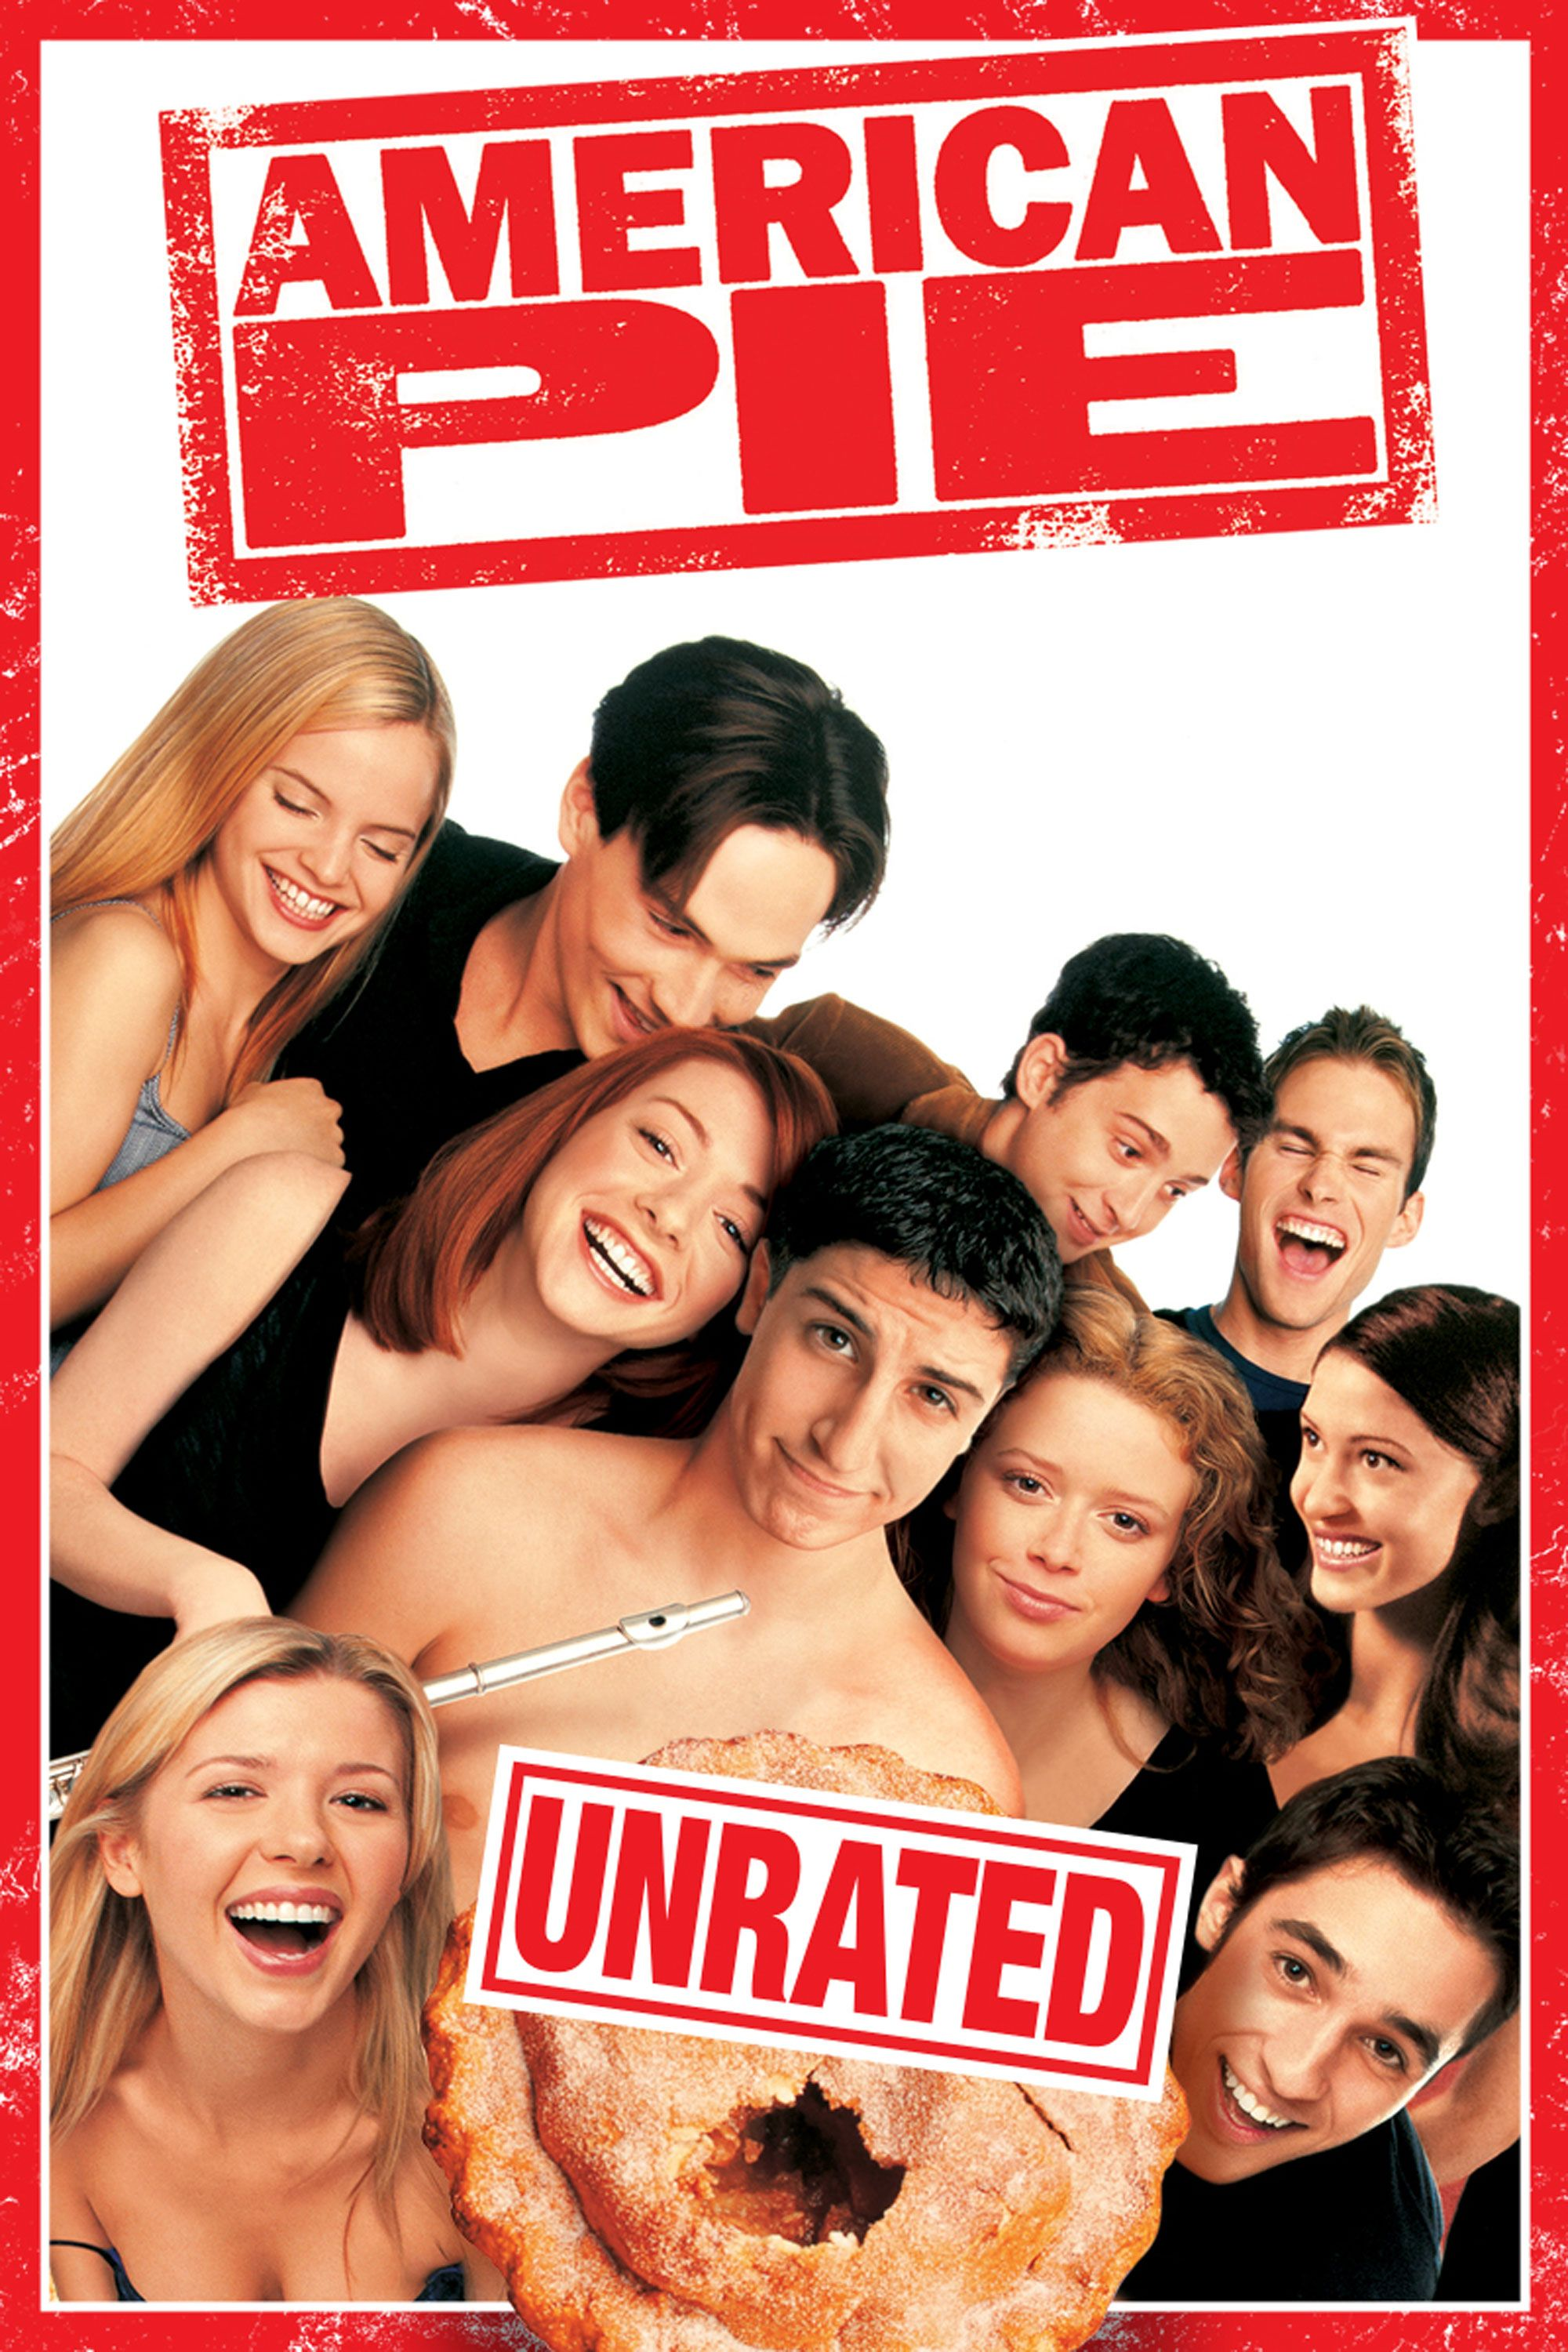 American Pie Uncensored american pie (unrated) | full movie | movies anywhere